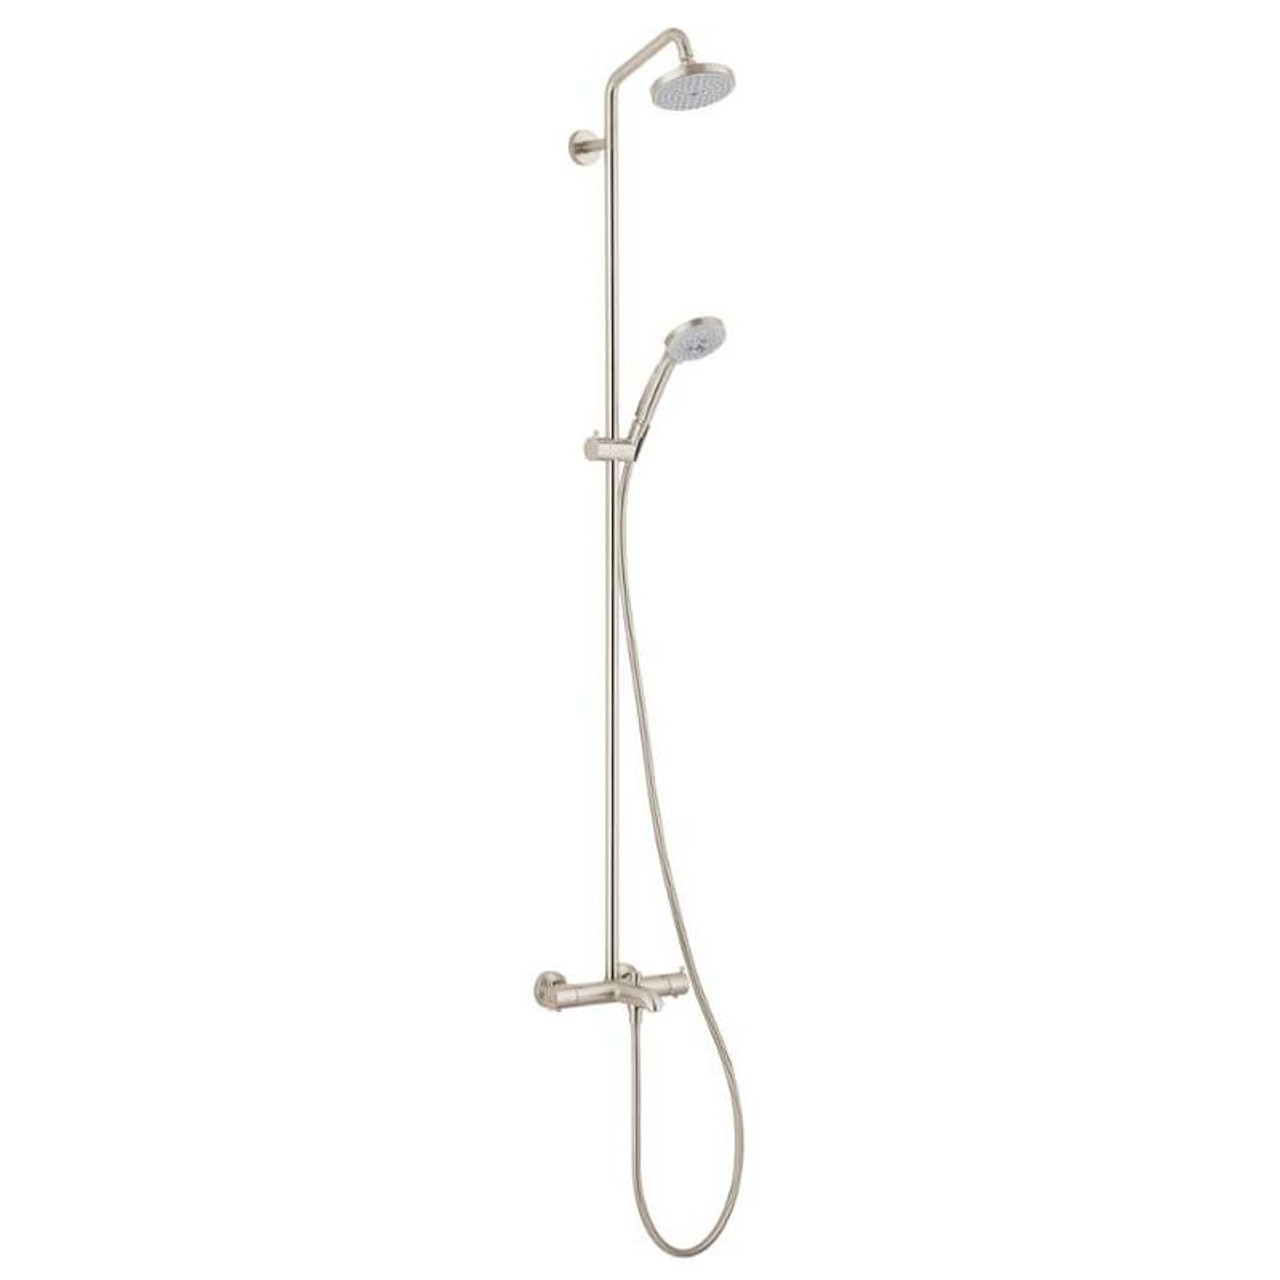 Hansgrohe 027143821 Croma Showerpipe Shower System With Tub Spout Multi Funtion Hand Shower 63 In Hose And Shower Head